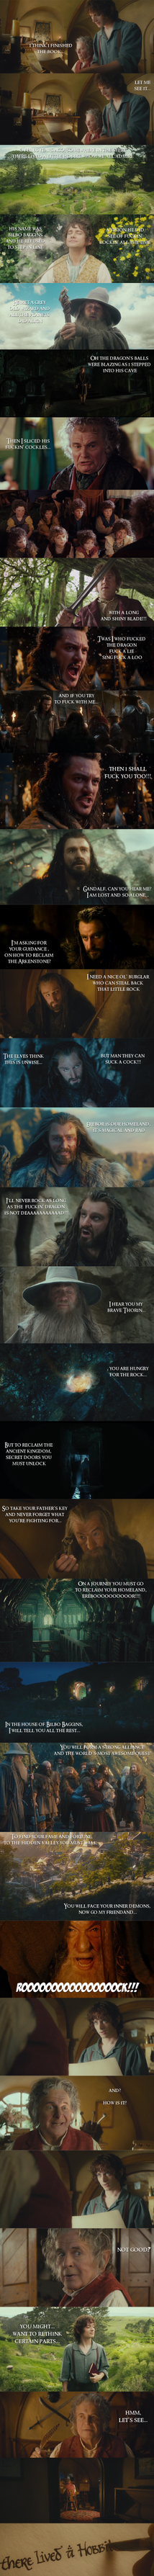 The Hobbit - Origins... (spoilers) by yourparodies